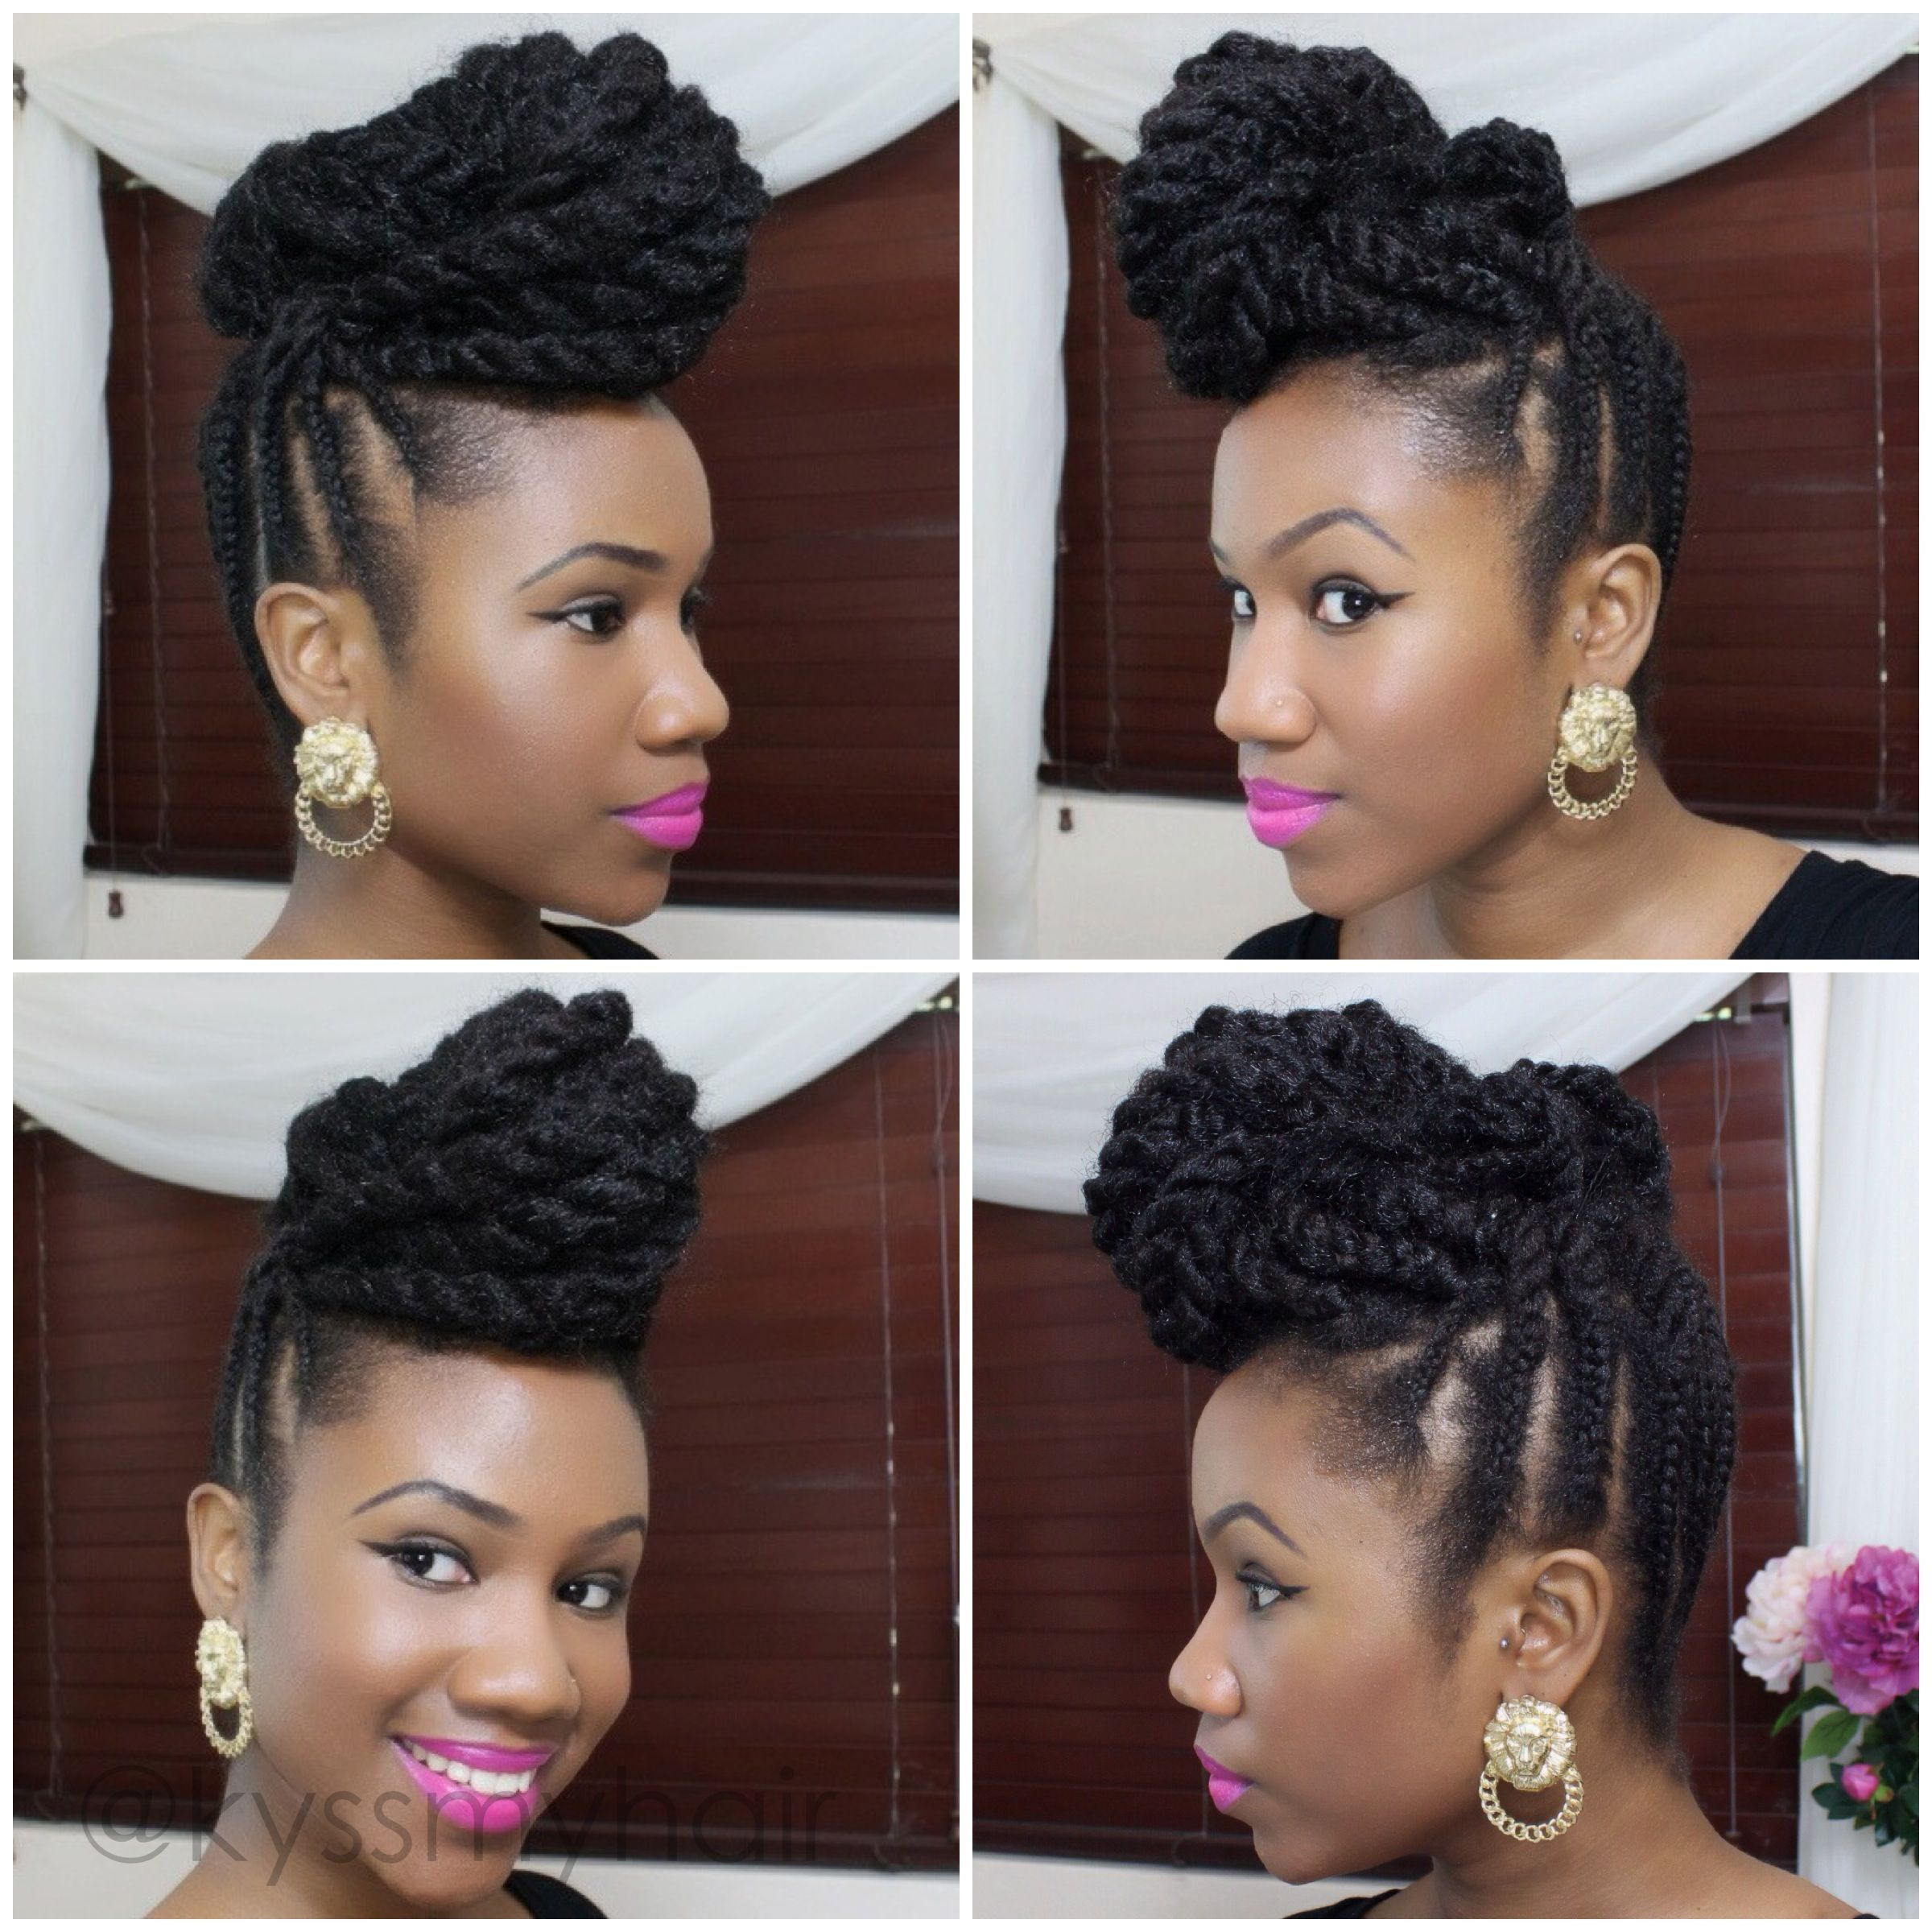 Marley Hair Braided Updo Hairstyles For Natural